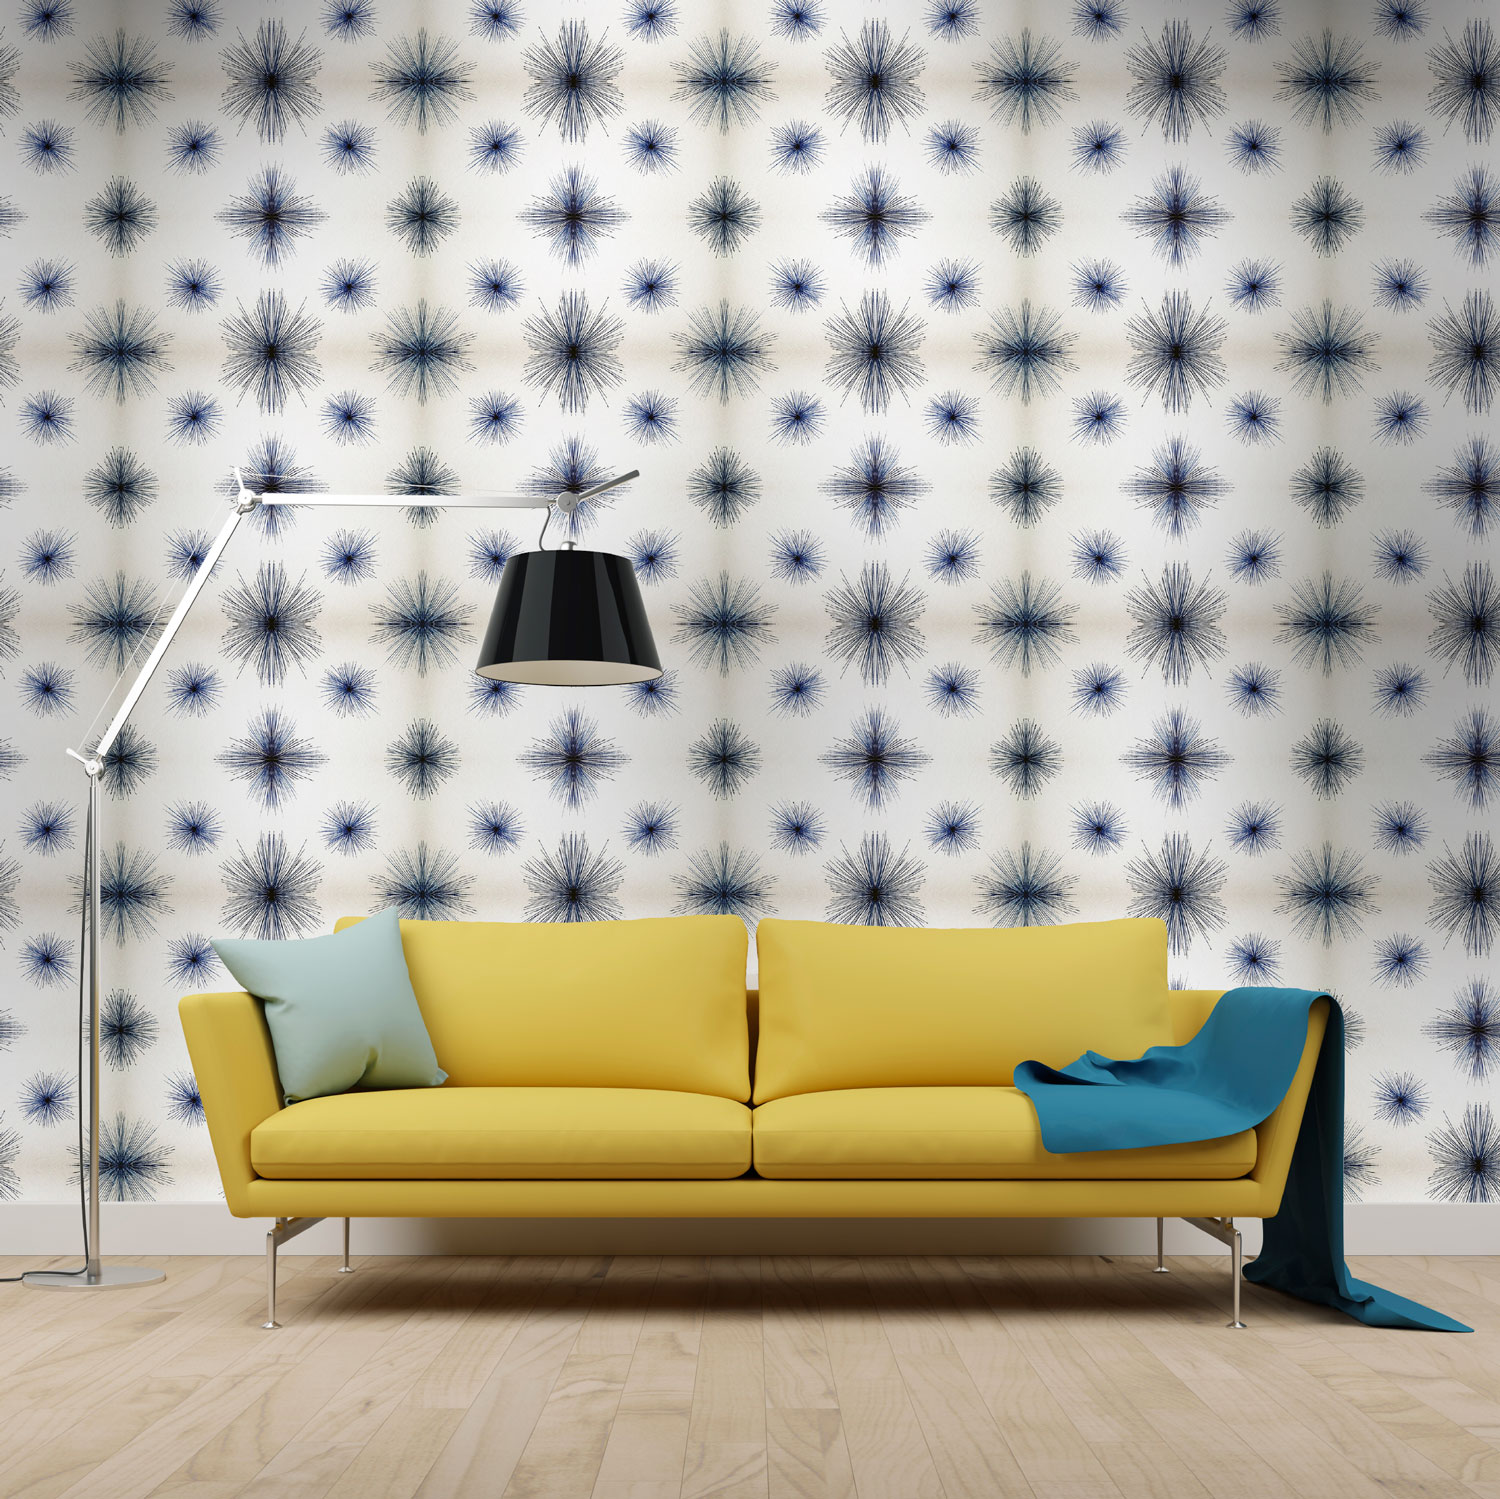 Yellow-Couch-Black-Lamp-STAR-Indigo.jpg